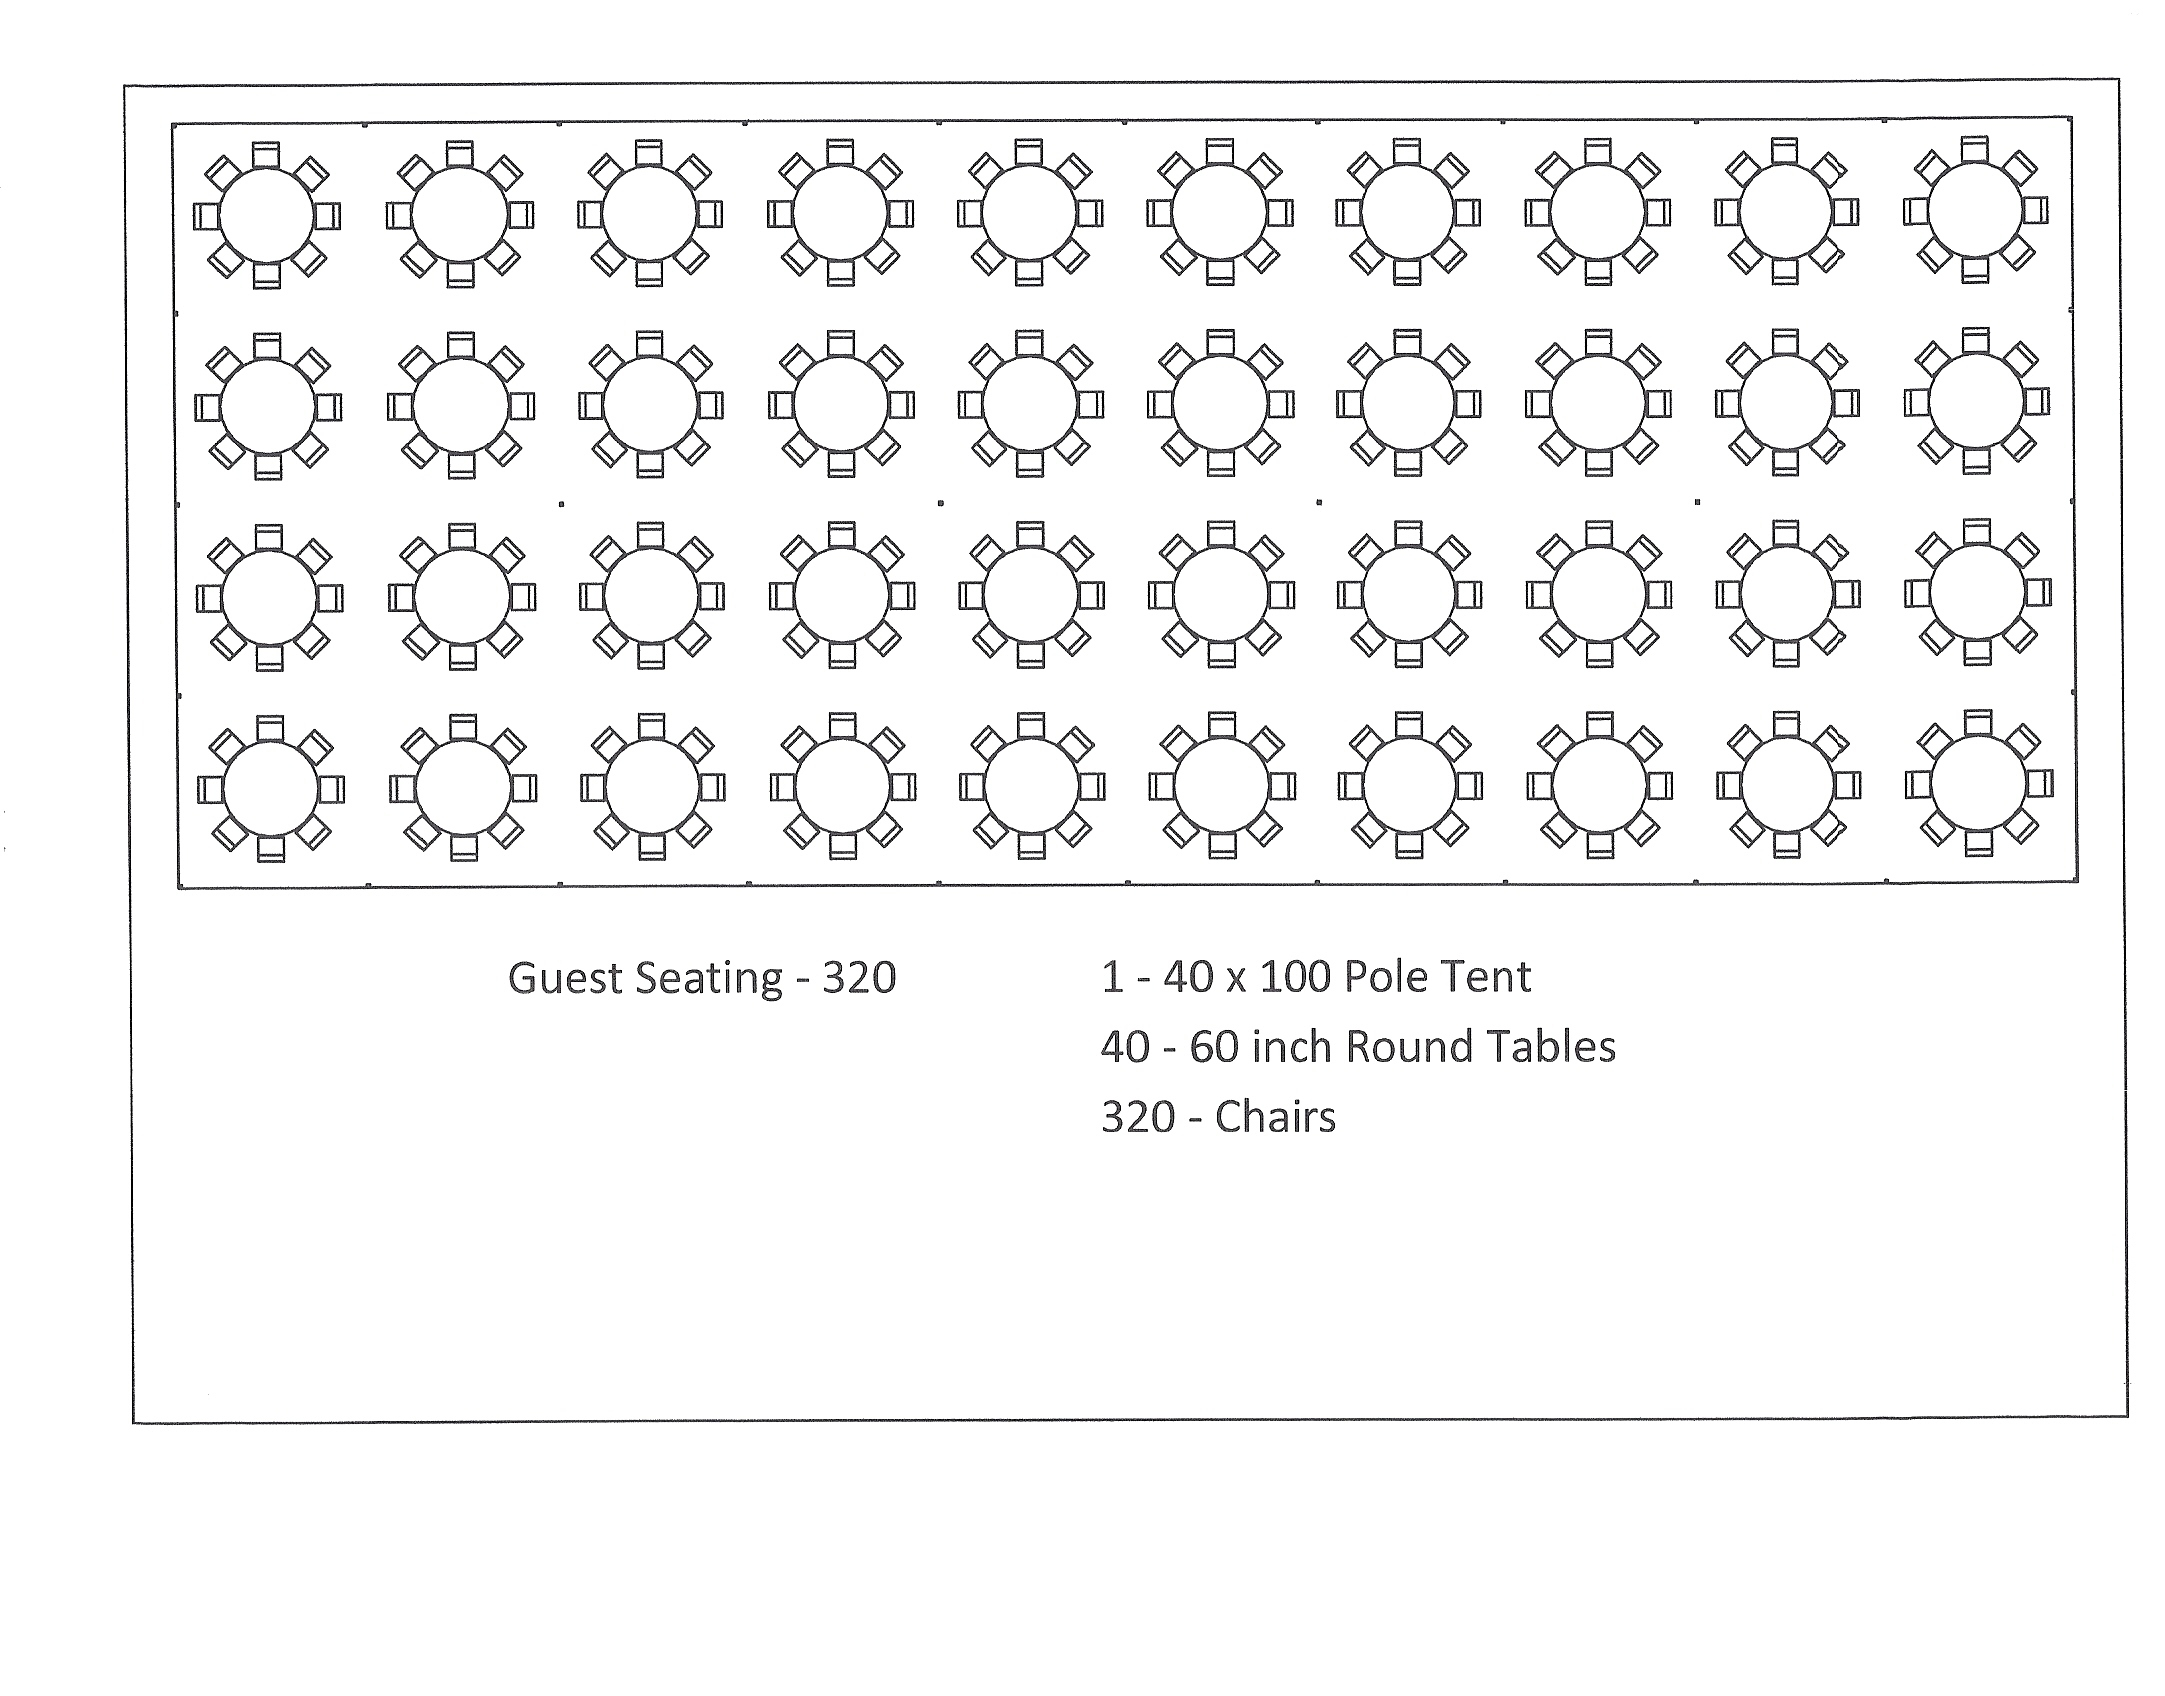 40 x 100 Pole Tent Seating Arrangements  sc 1 st  Canton Canopies & 40 x 100 Pole Tent Seating Arrangement